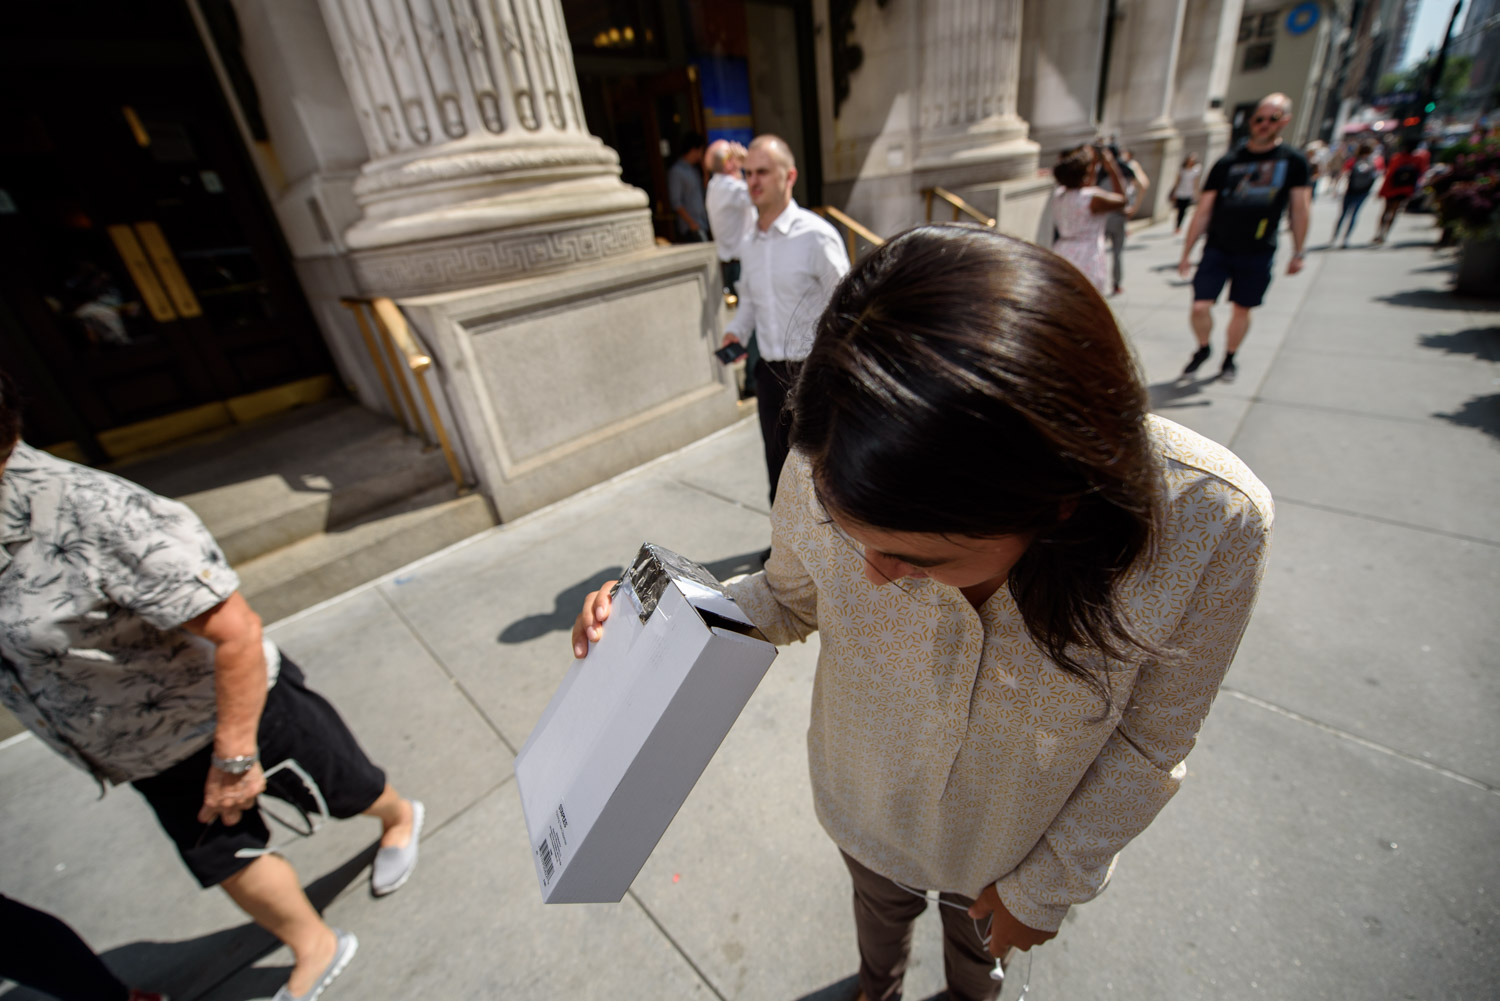 <div class='meta'><div class='origin-logo' data-origin='WABC'></div><span class='caption-text' data-credit='WABC Photo/Mike Waterhouse'>People in Midtown Manhattan paused for a moment and used a reflective box viewer to watch the solar eclipse on Monday, Aug. 21, 2017.</span></div>